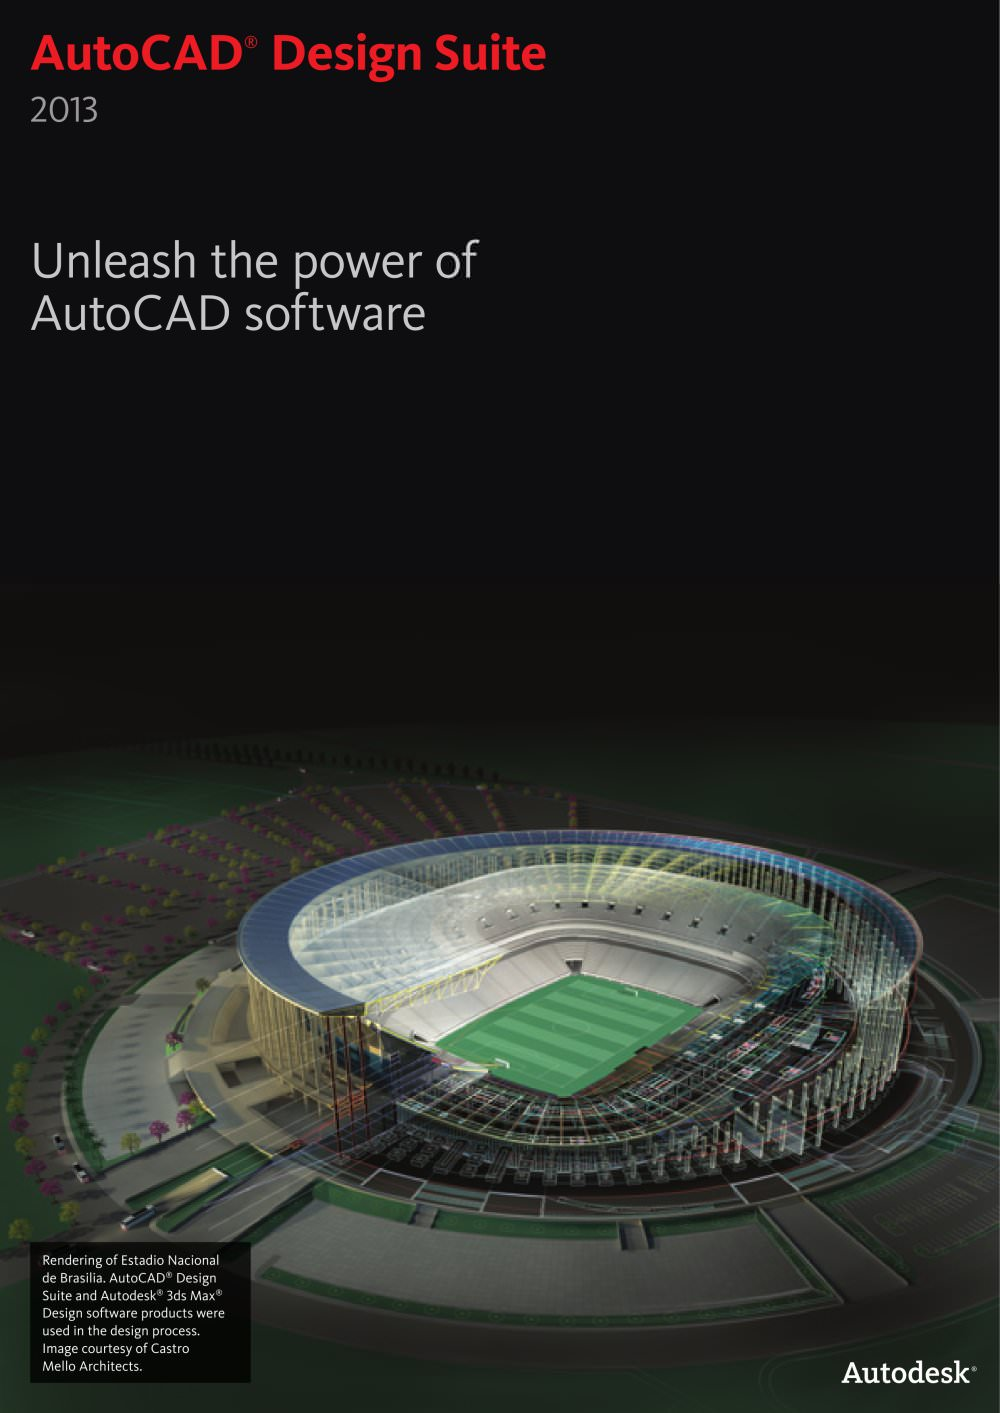 unleash-the-power-of-autocad-software-10